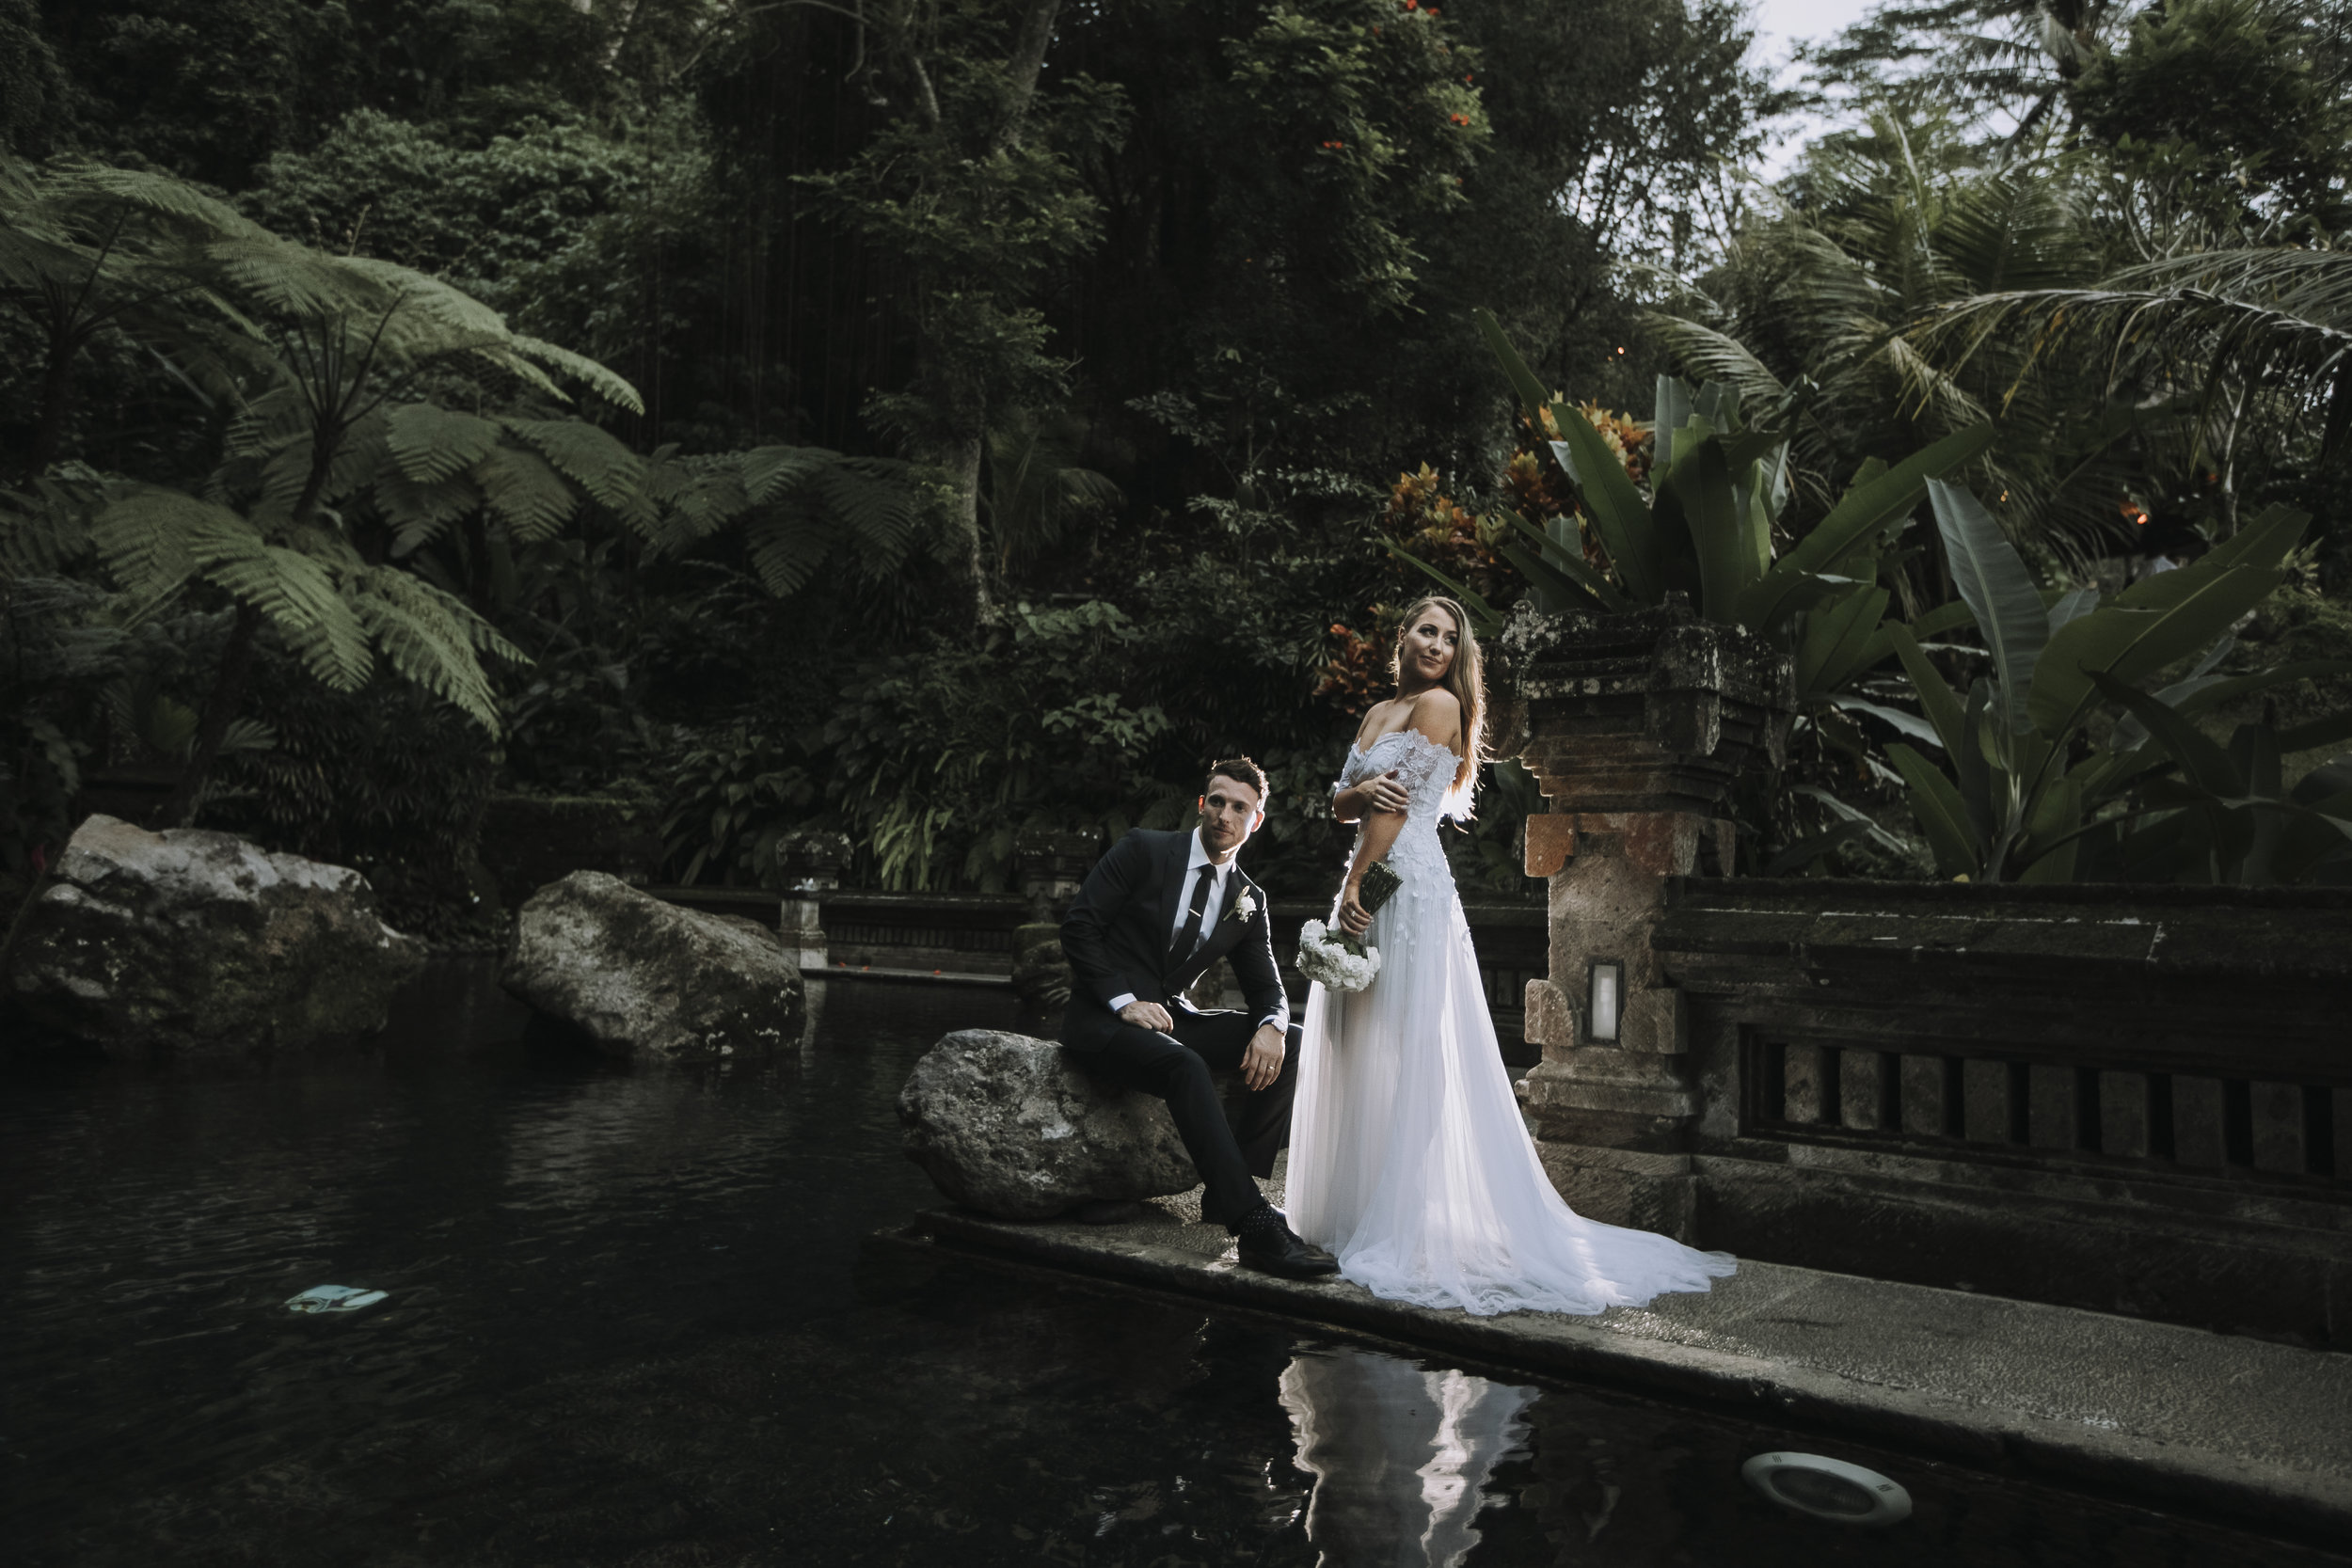 3. Not Just One Planner, But a Whole Team - At least 5 Botanica team members present on your day including wedding co-ordinator and functions manager to ensure a great experience for you and your guests.